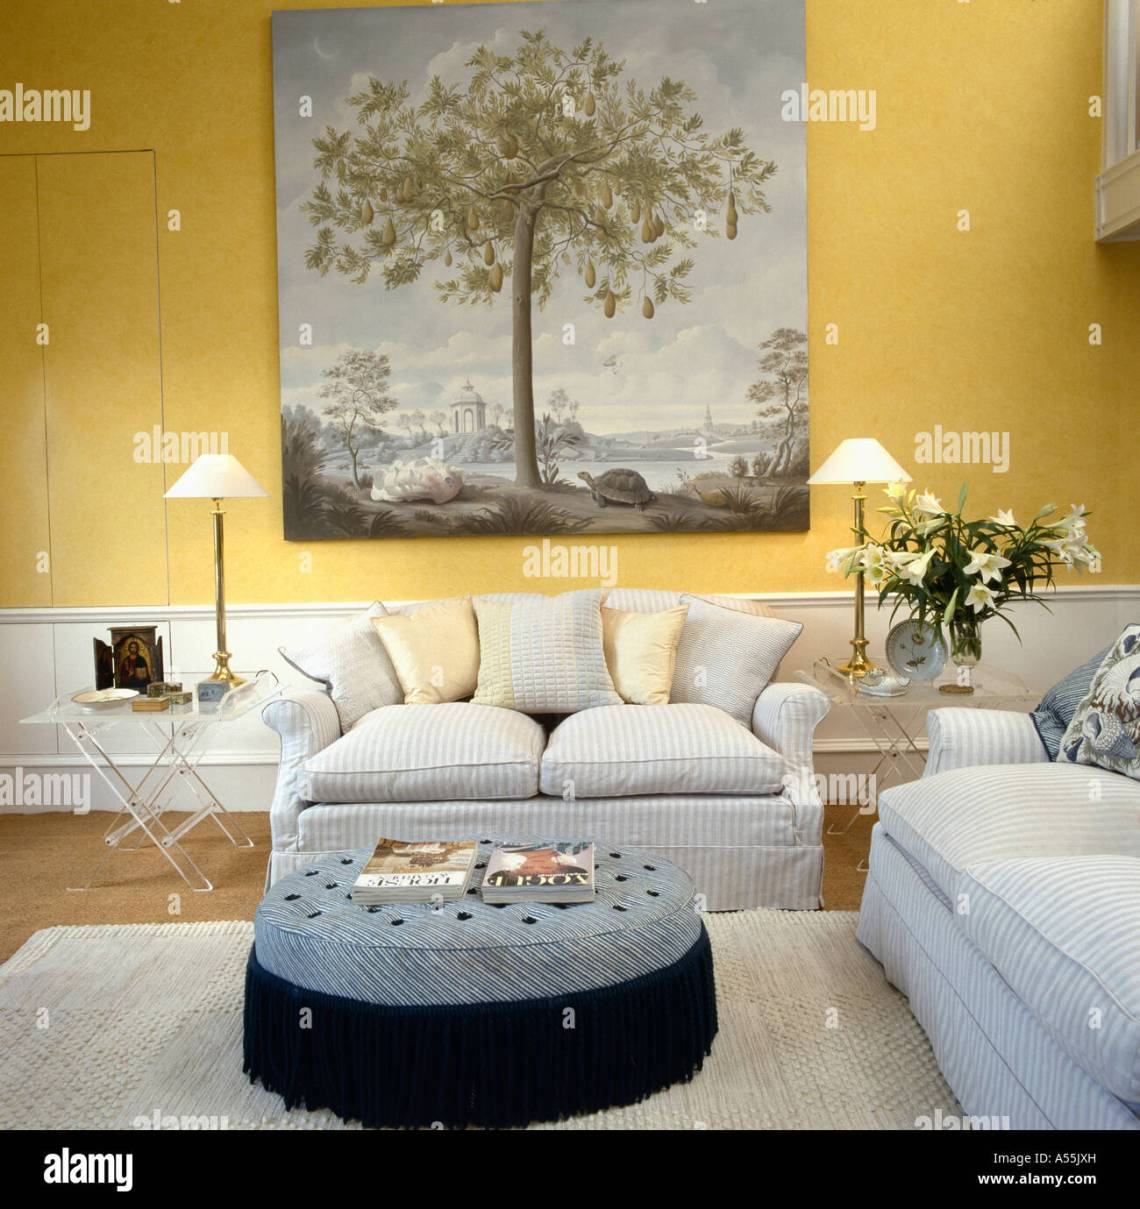 Large 18th Century Style Picture Above Pale Gray Sofa In Pale Yellow Living Room With Large Circular Upholstered Stool Stock Photo Alamy